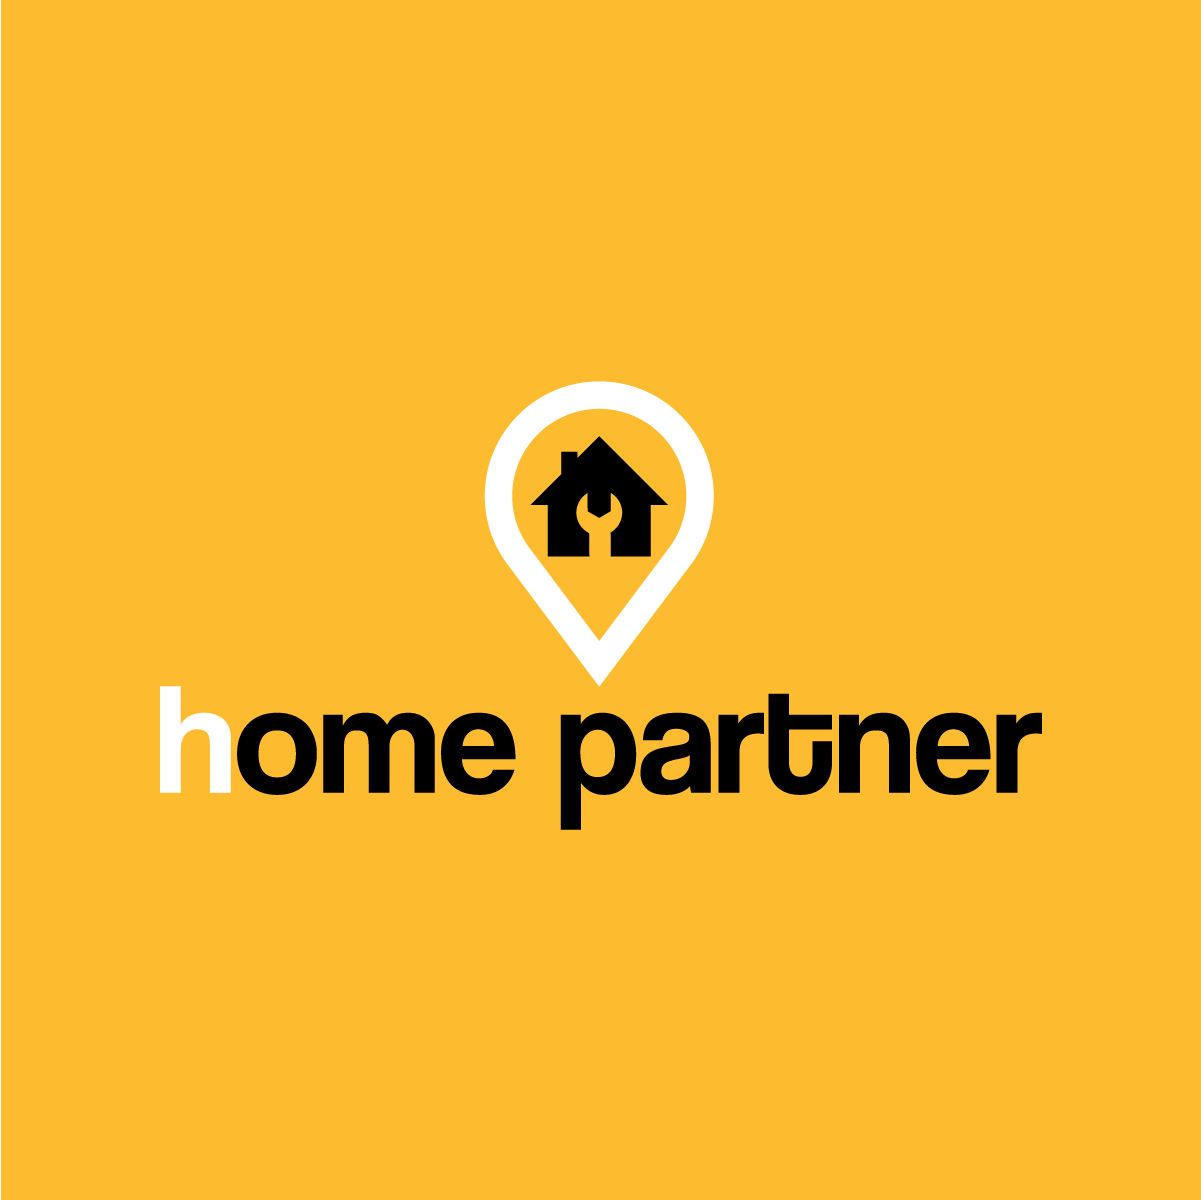 hompartner